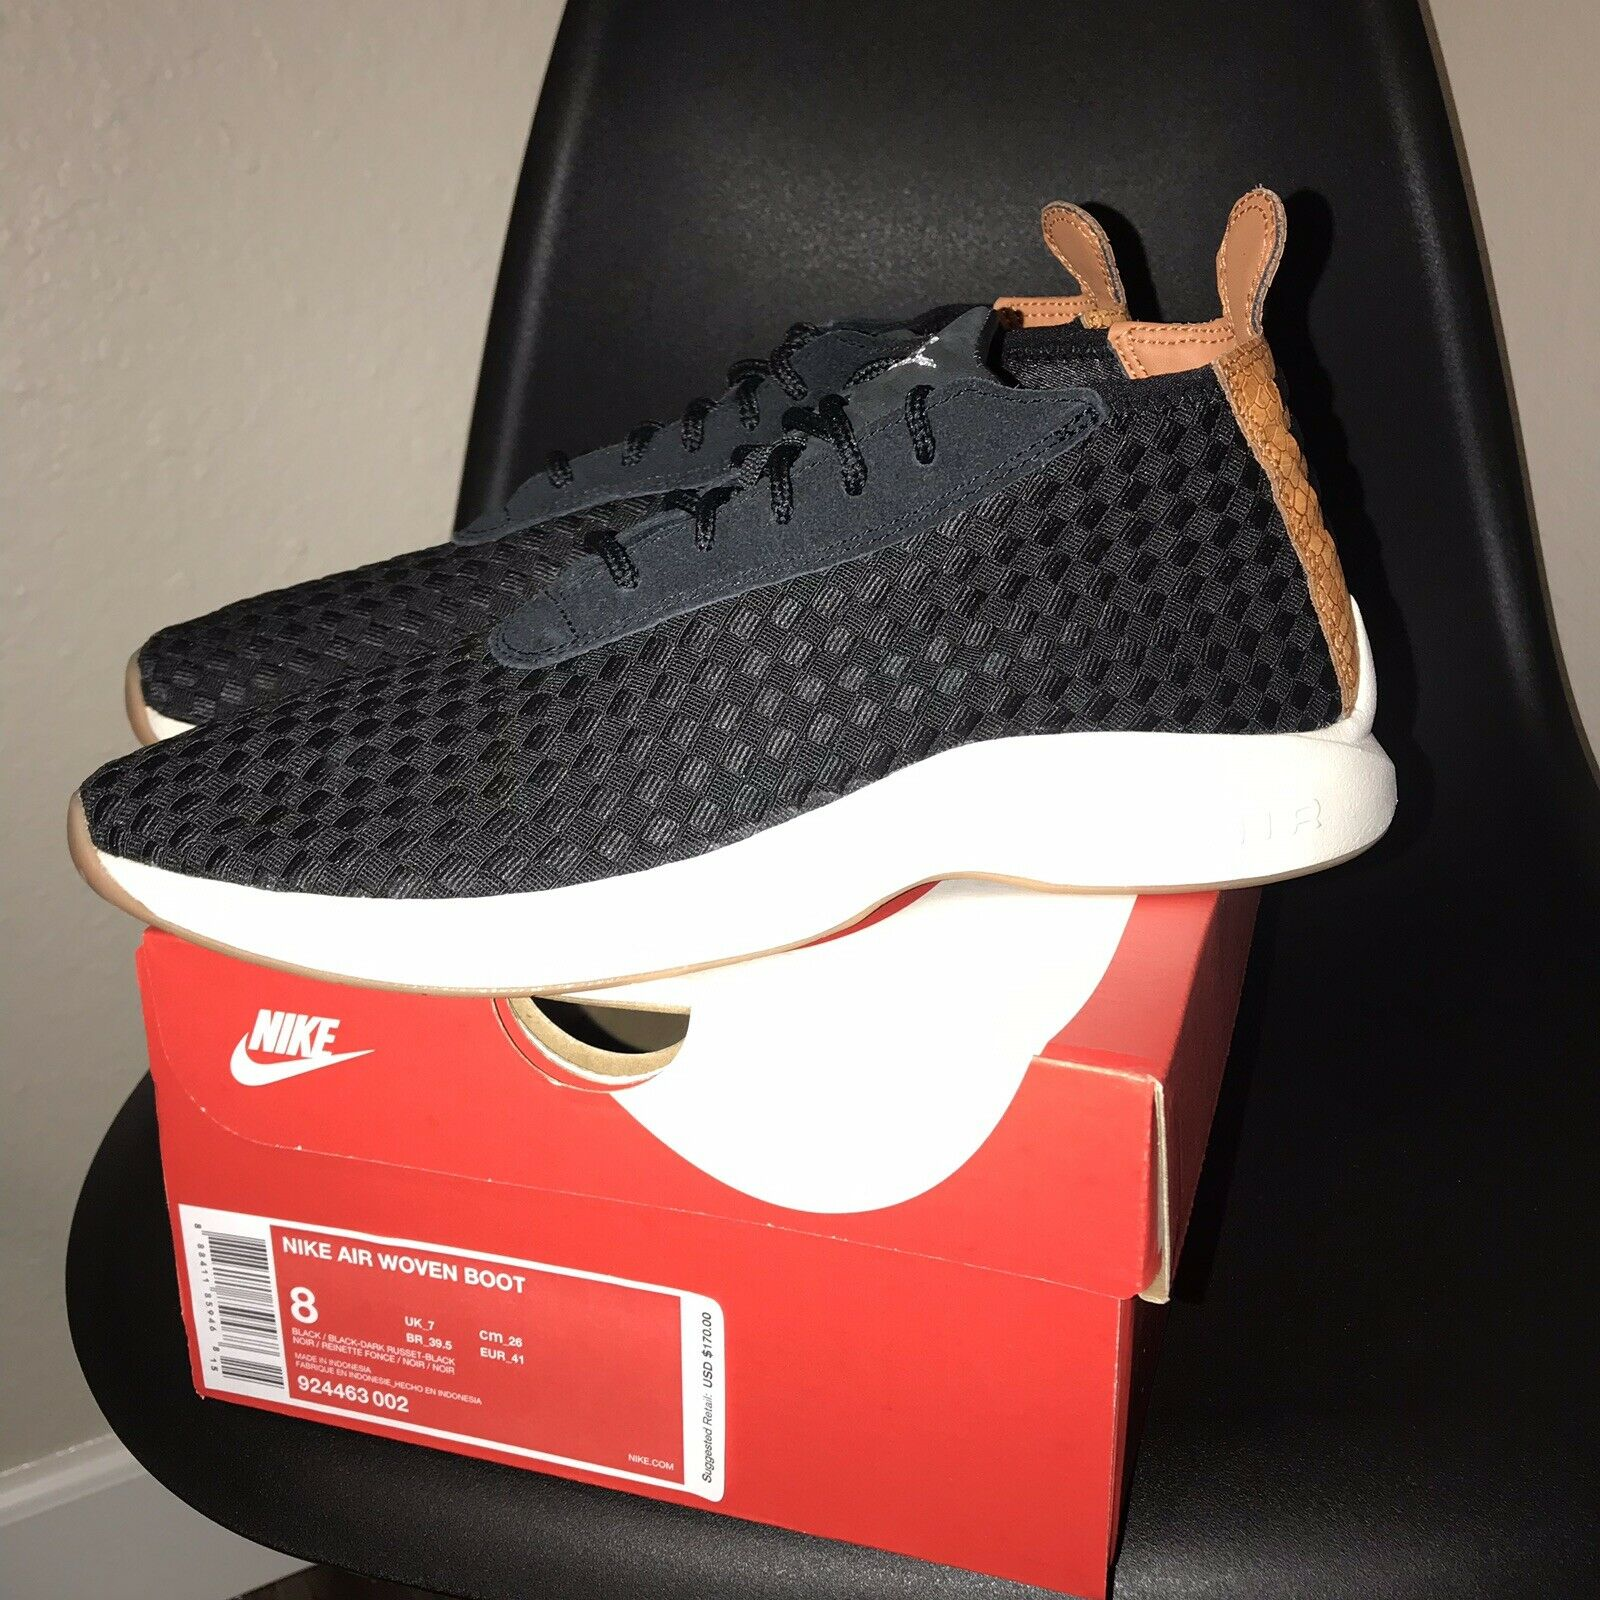 NIKE Men's Size 8 AIR WOVEN BOOT BLACK -Dark Russet With Box 924463 002